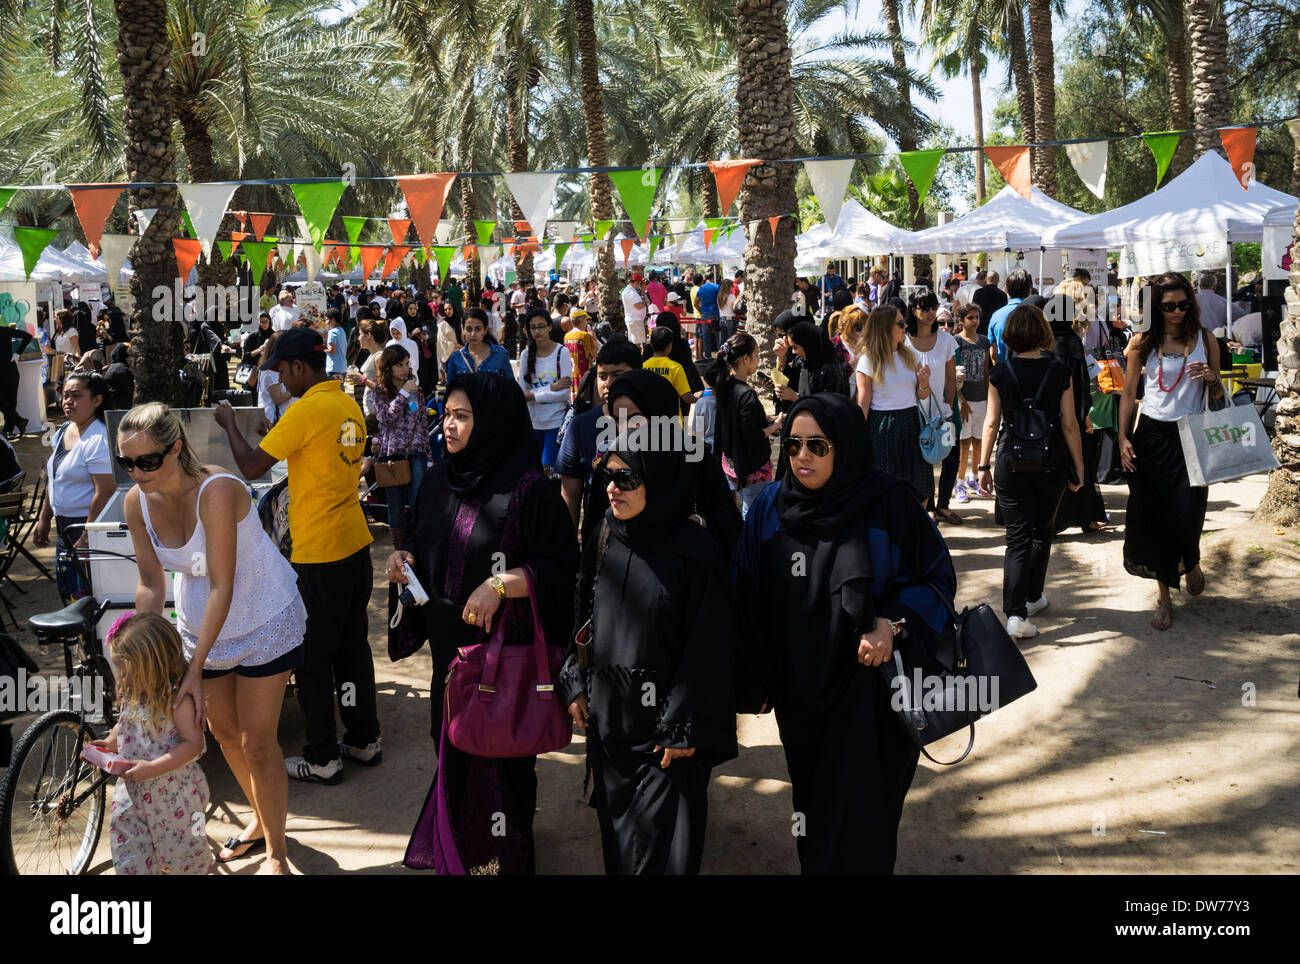 Busy food market held on holiday Fridays in Al Safa Park in Dubai United Arab Emirates - Stock Image